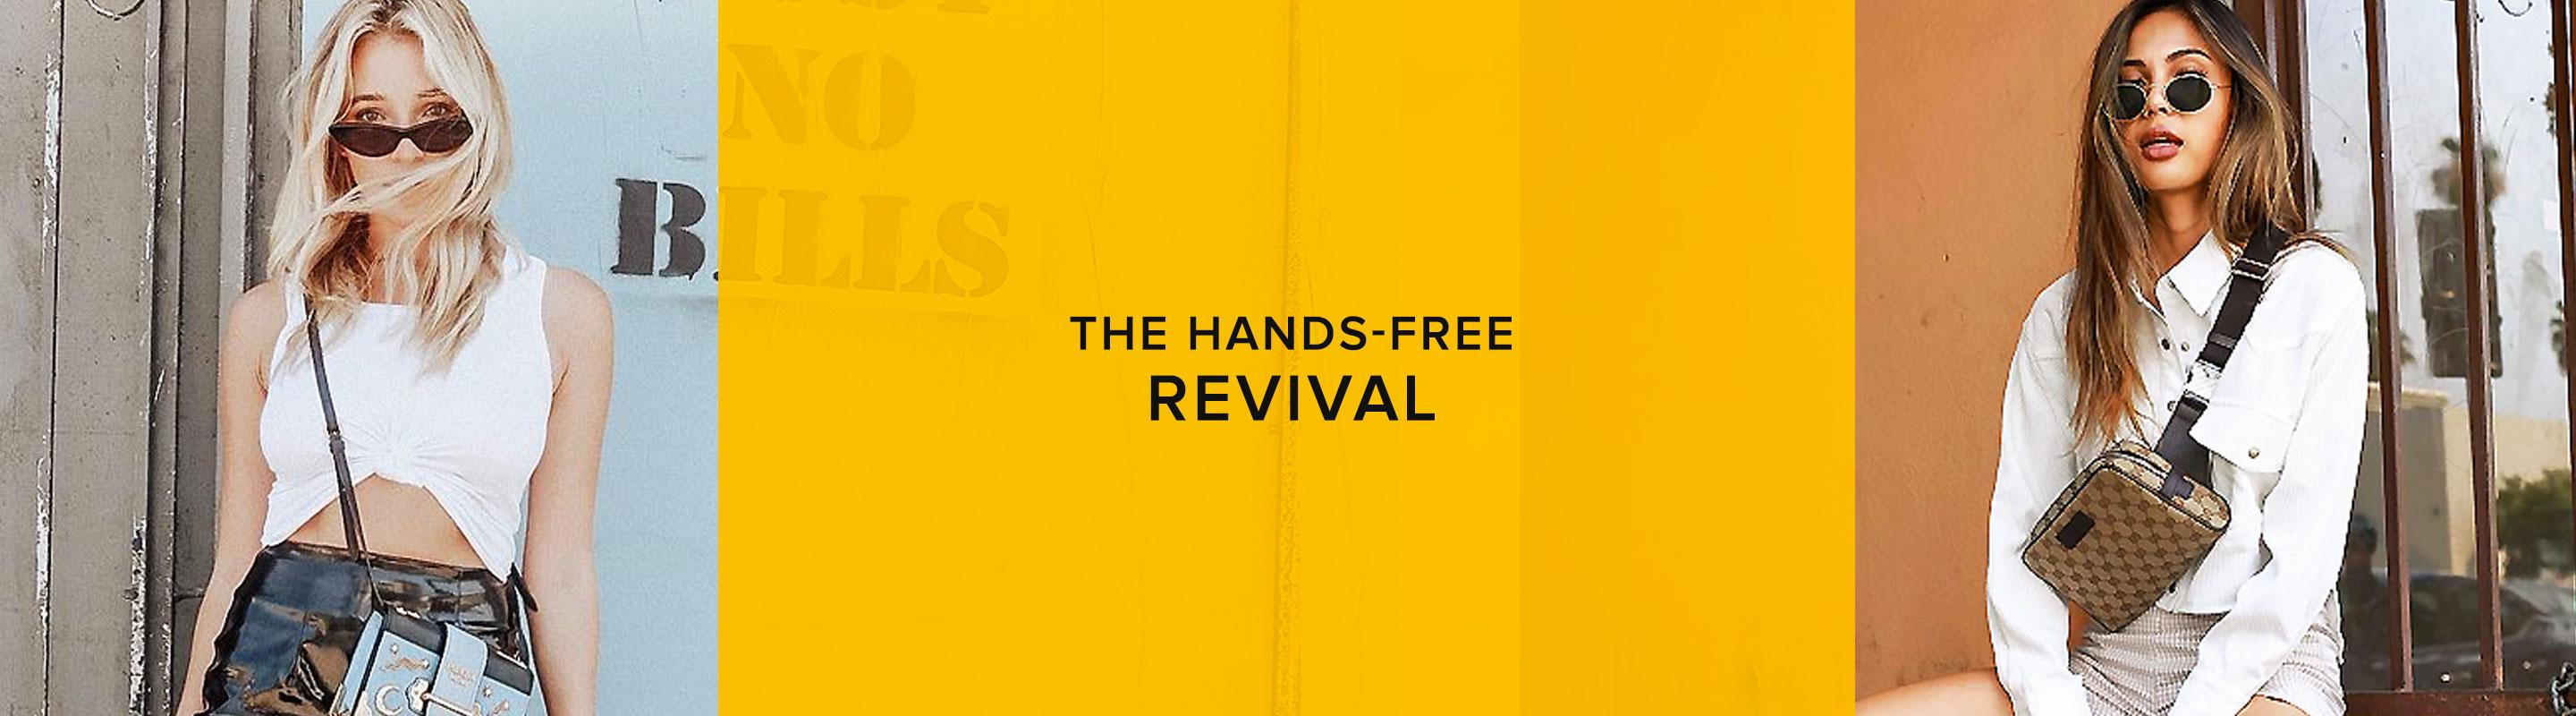 The Hands-Free Revival